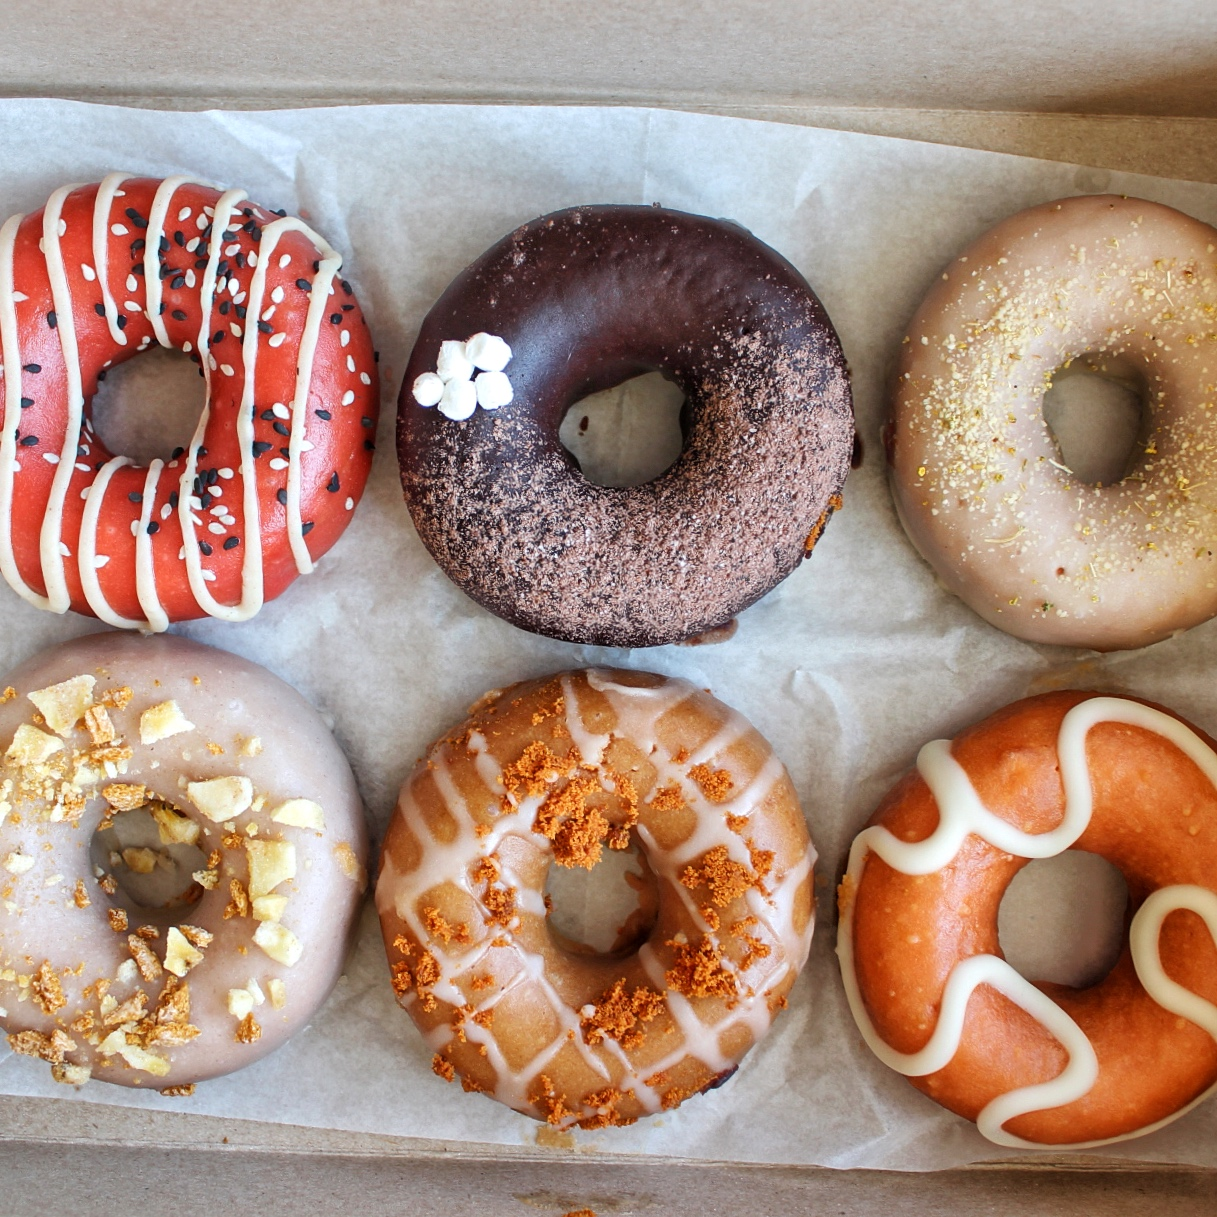 dus-donuts-brooklyn